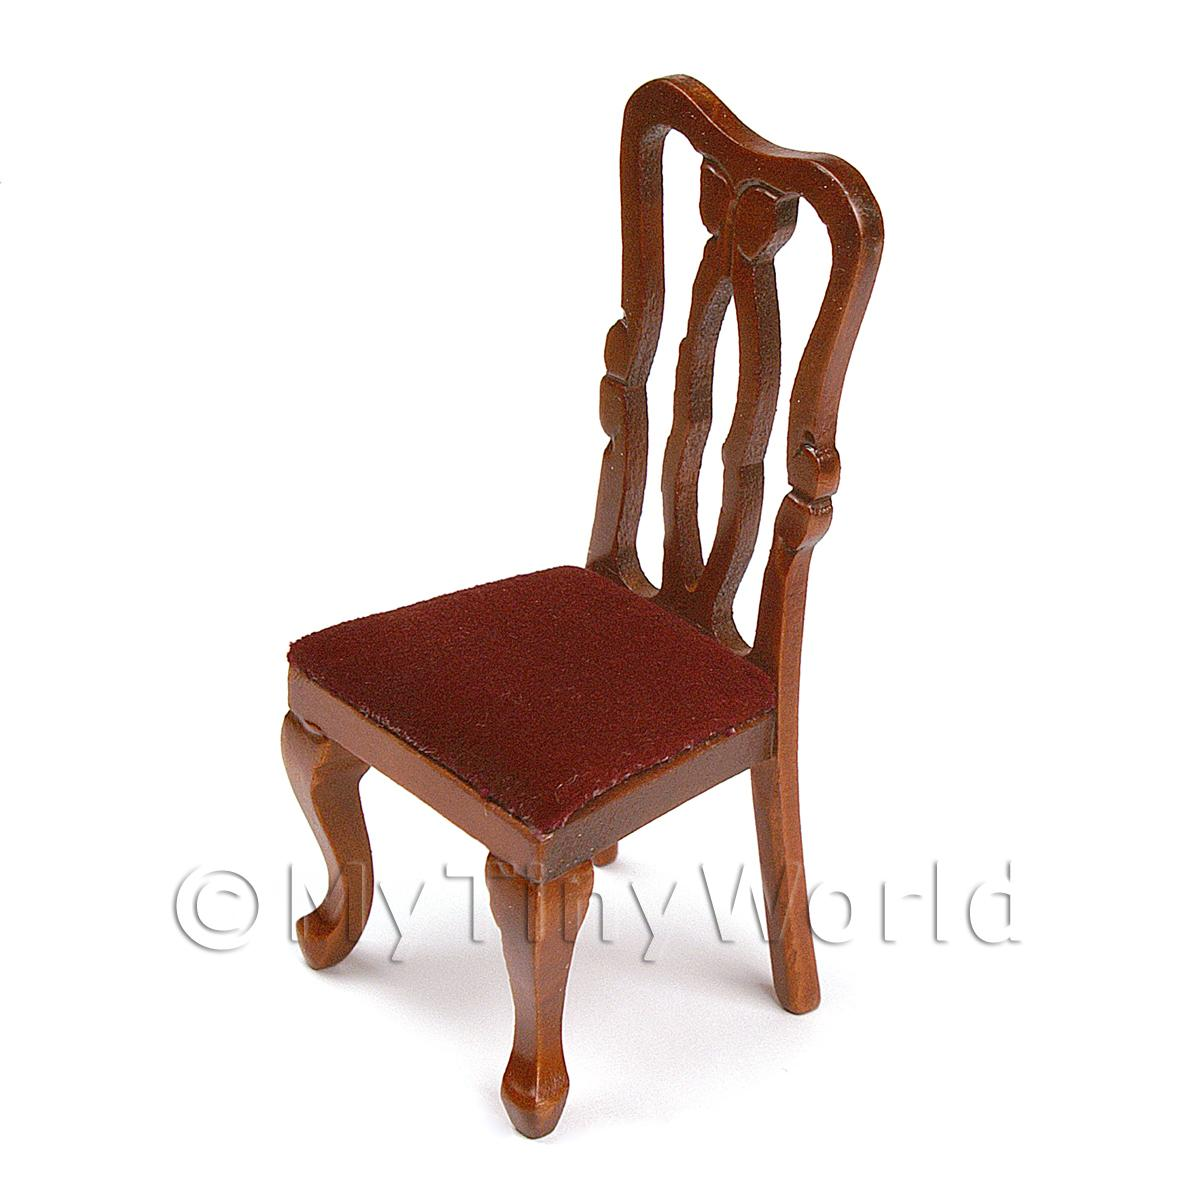 Miniature Chairs Dolls House Miniature Furniture Value Dolls House